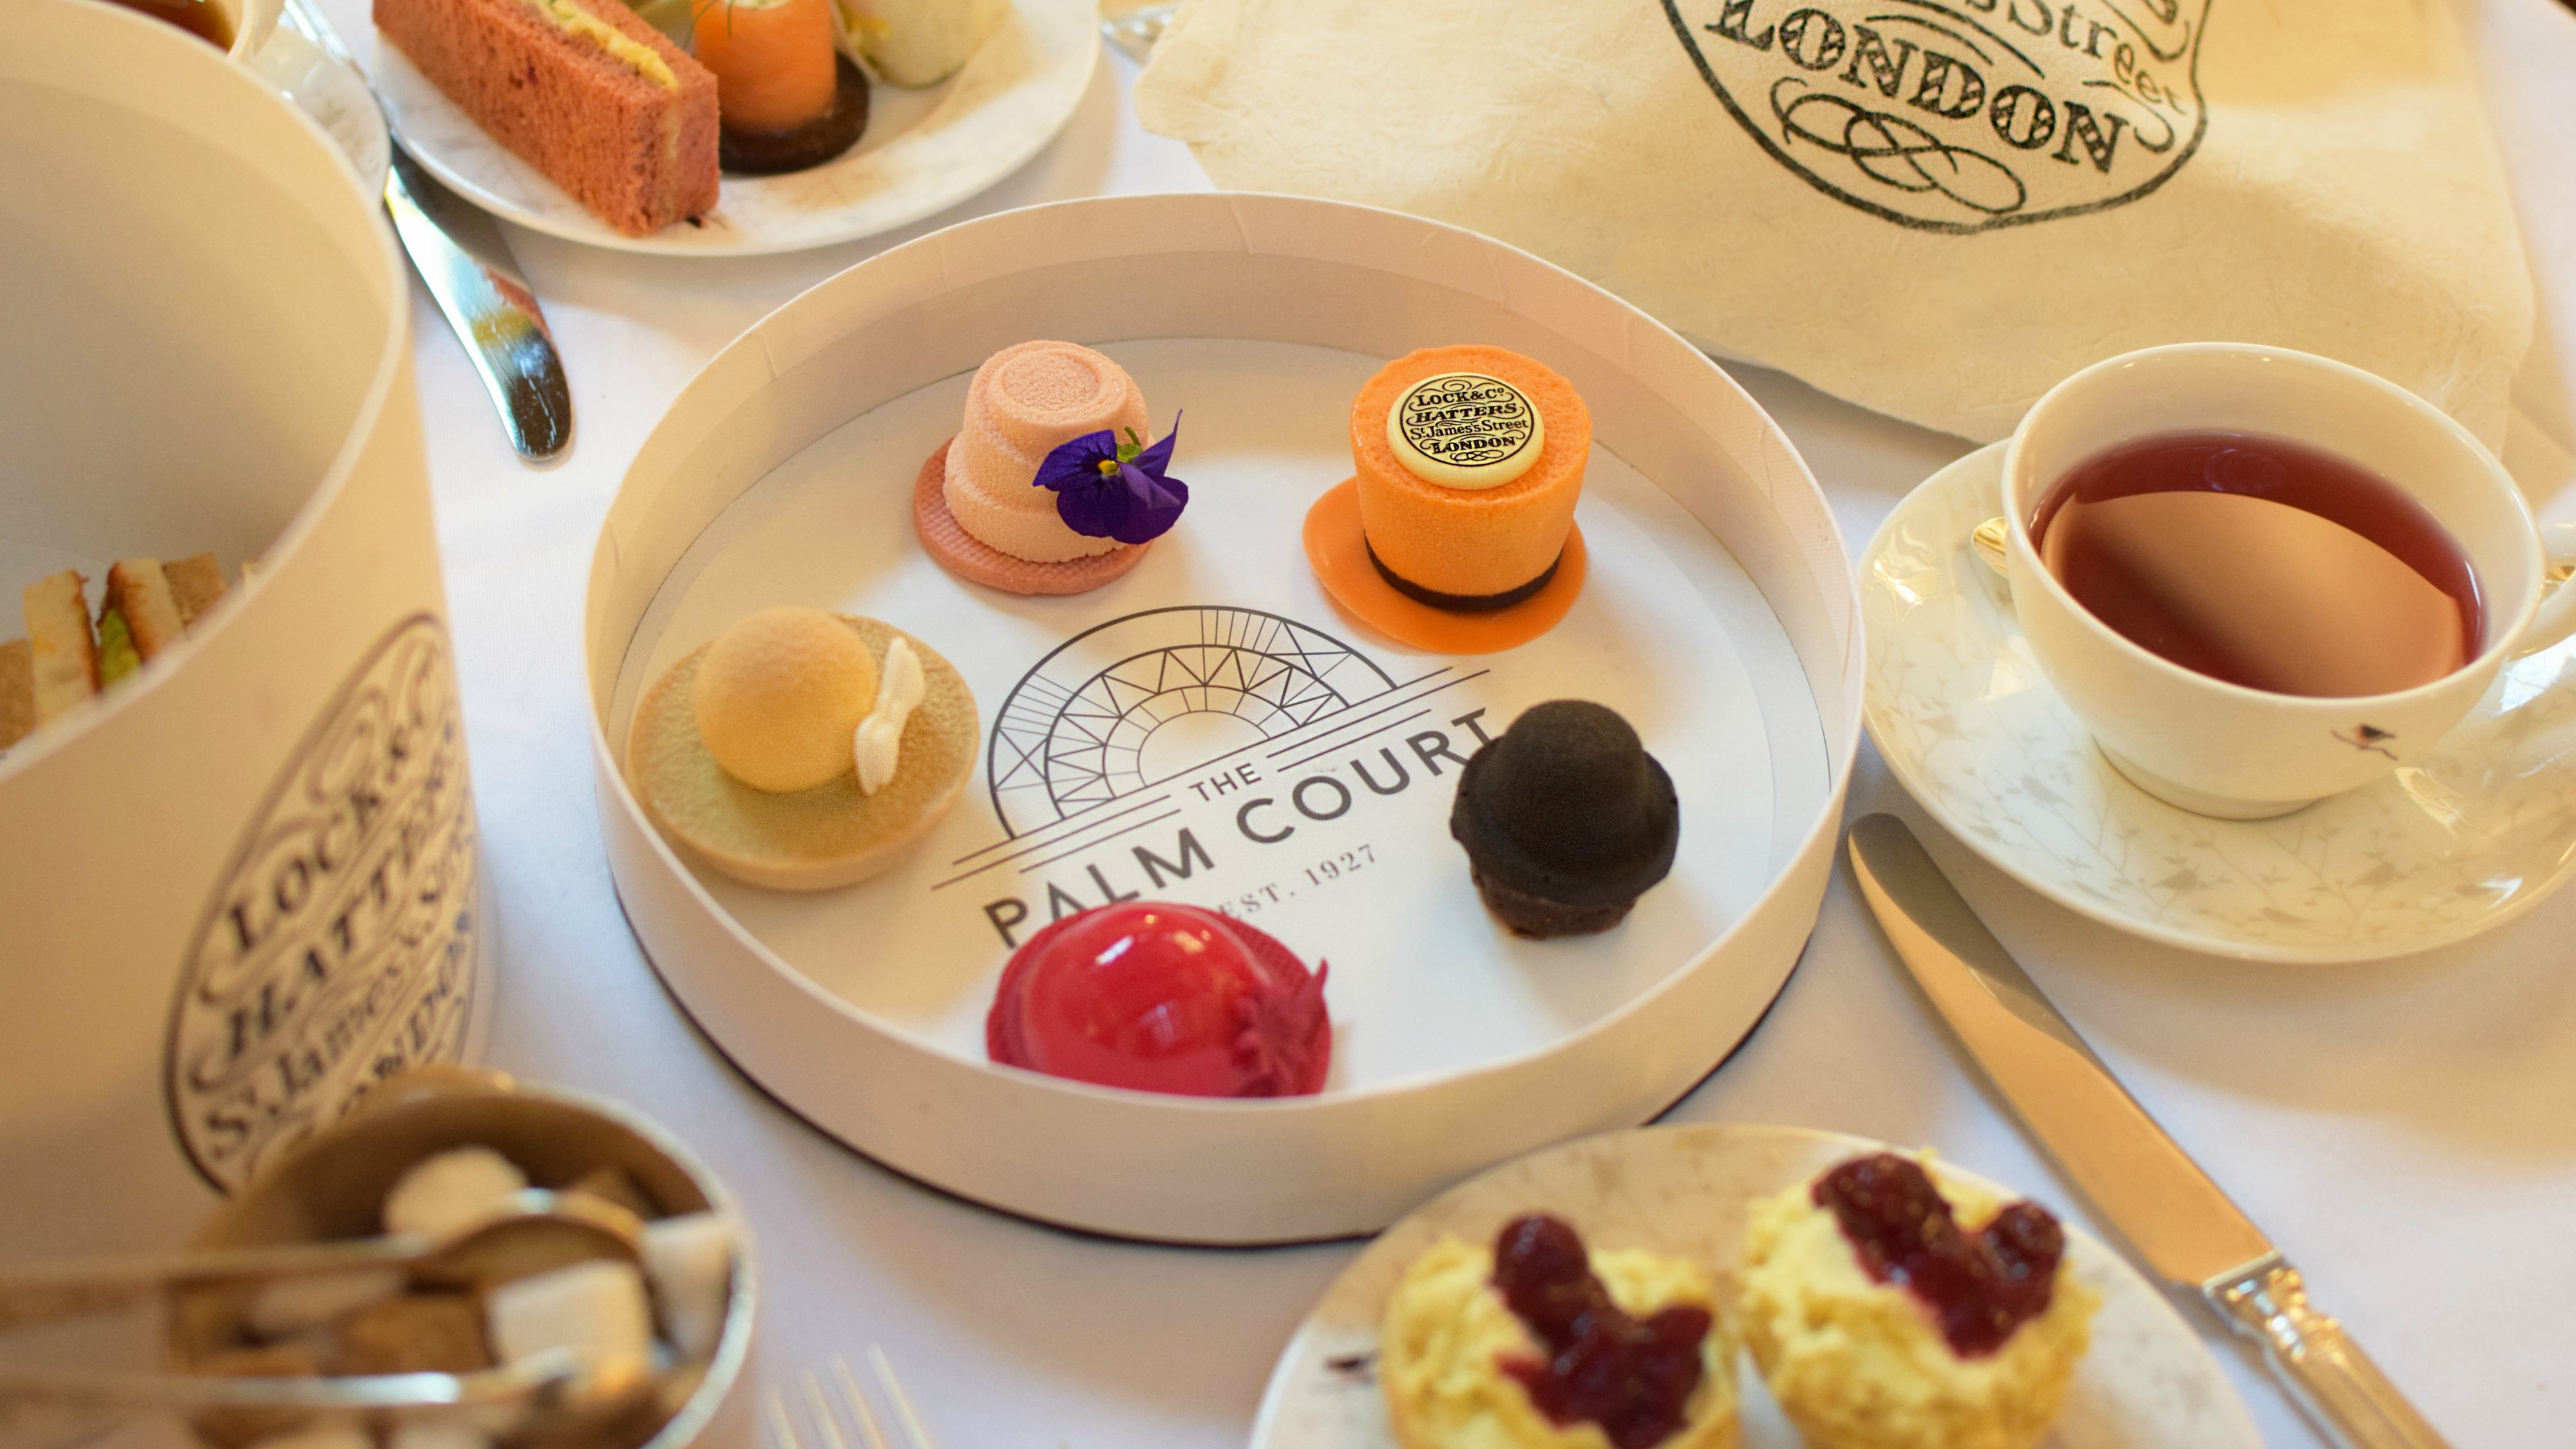 Lock & Co Afternoon Tea at the Sheraton Grand London Park Lane